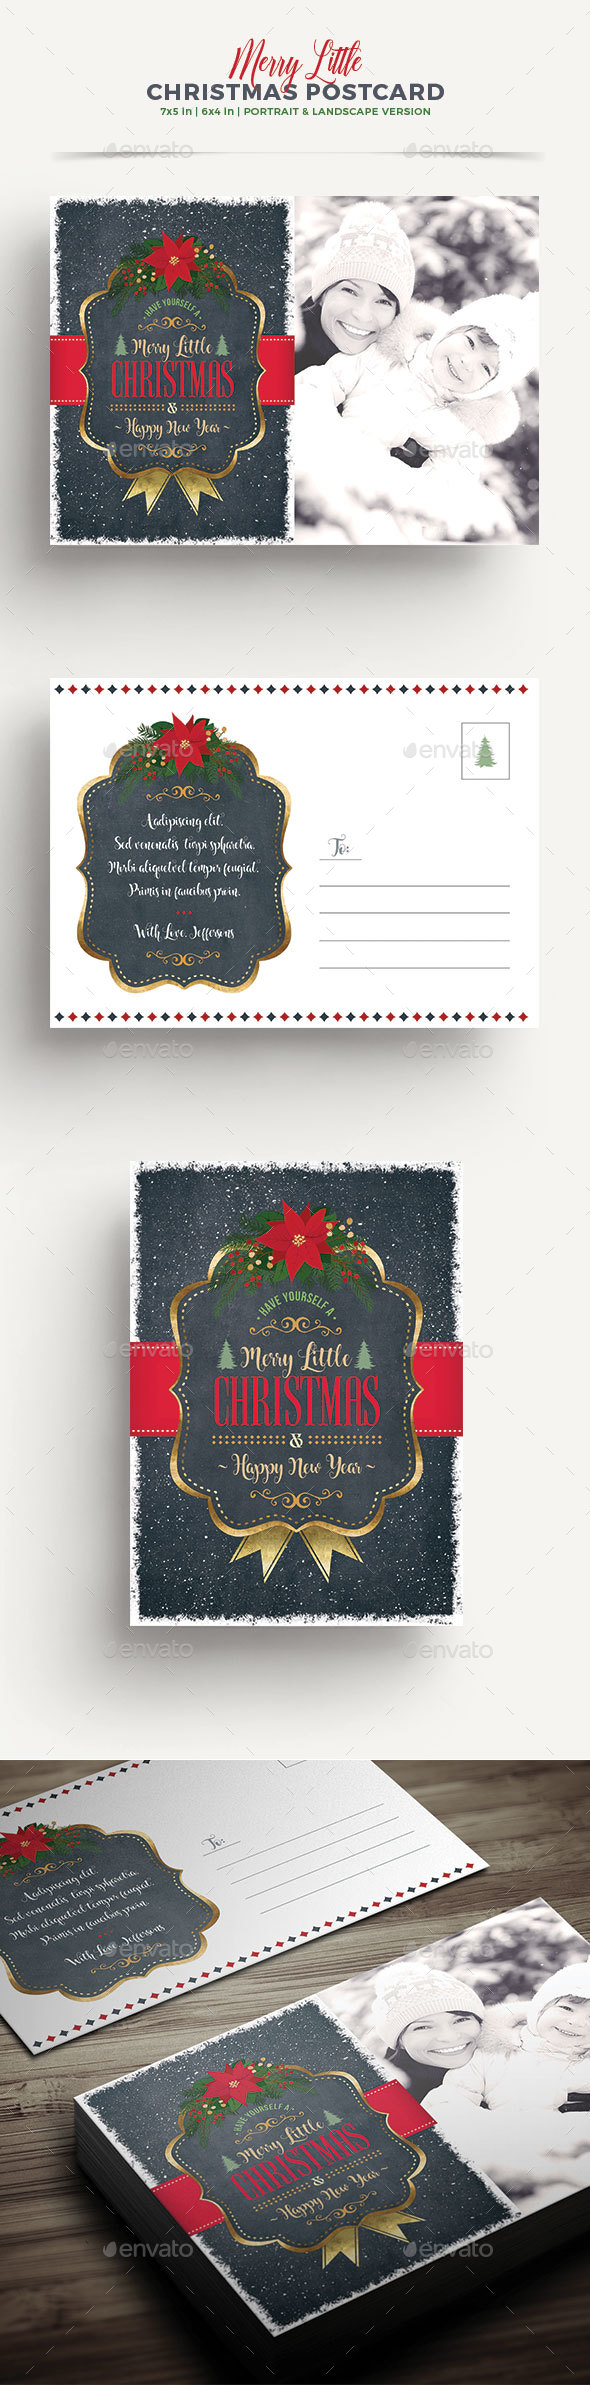 Christmas Greeting Card/Postcard - Holiday Greeting Cards